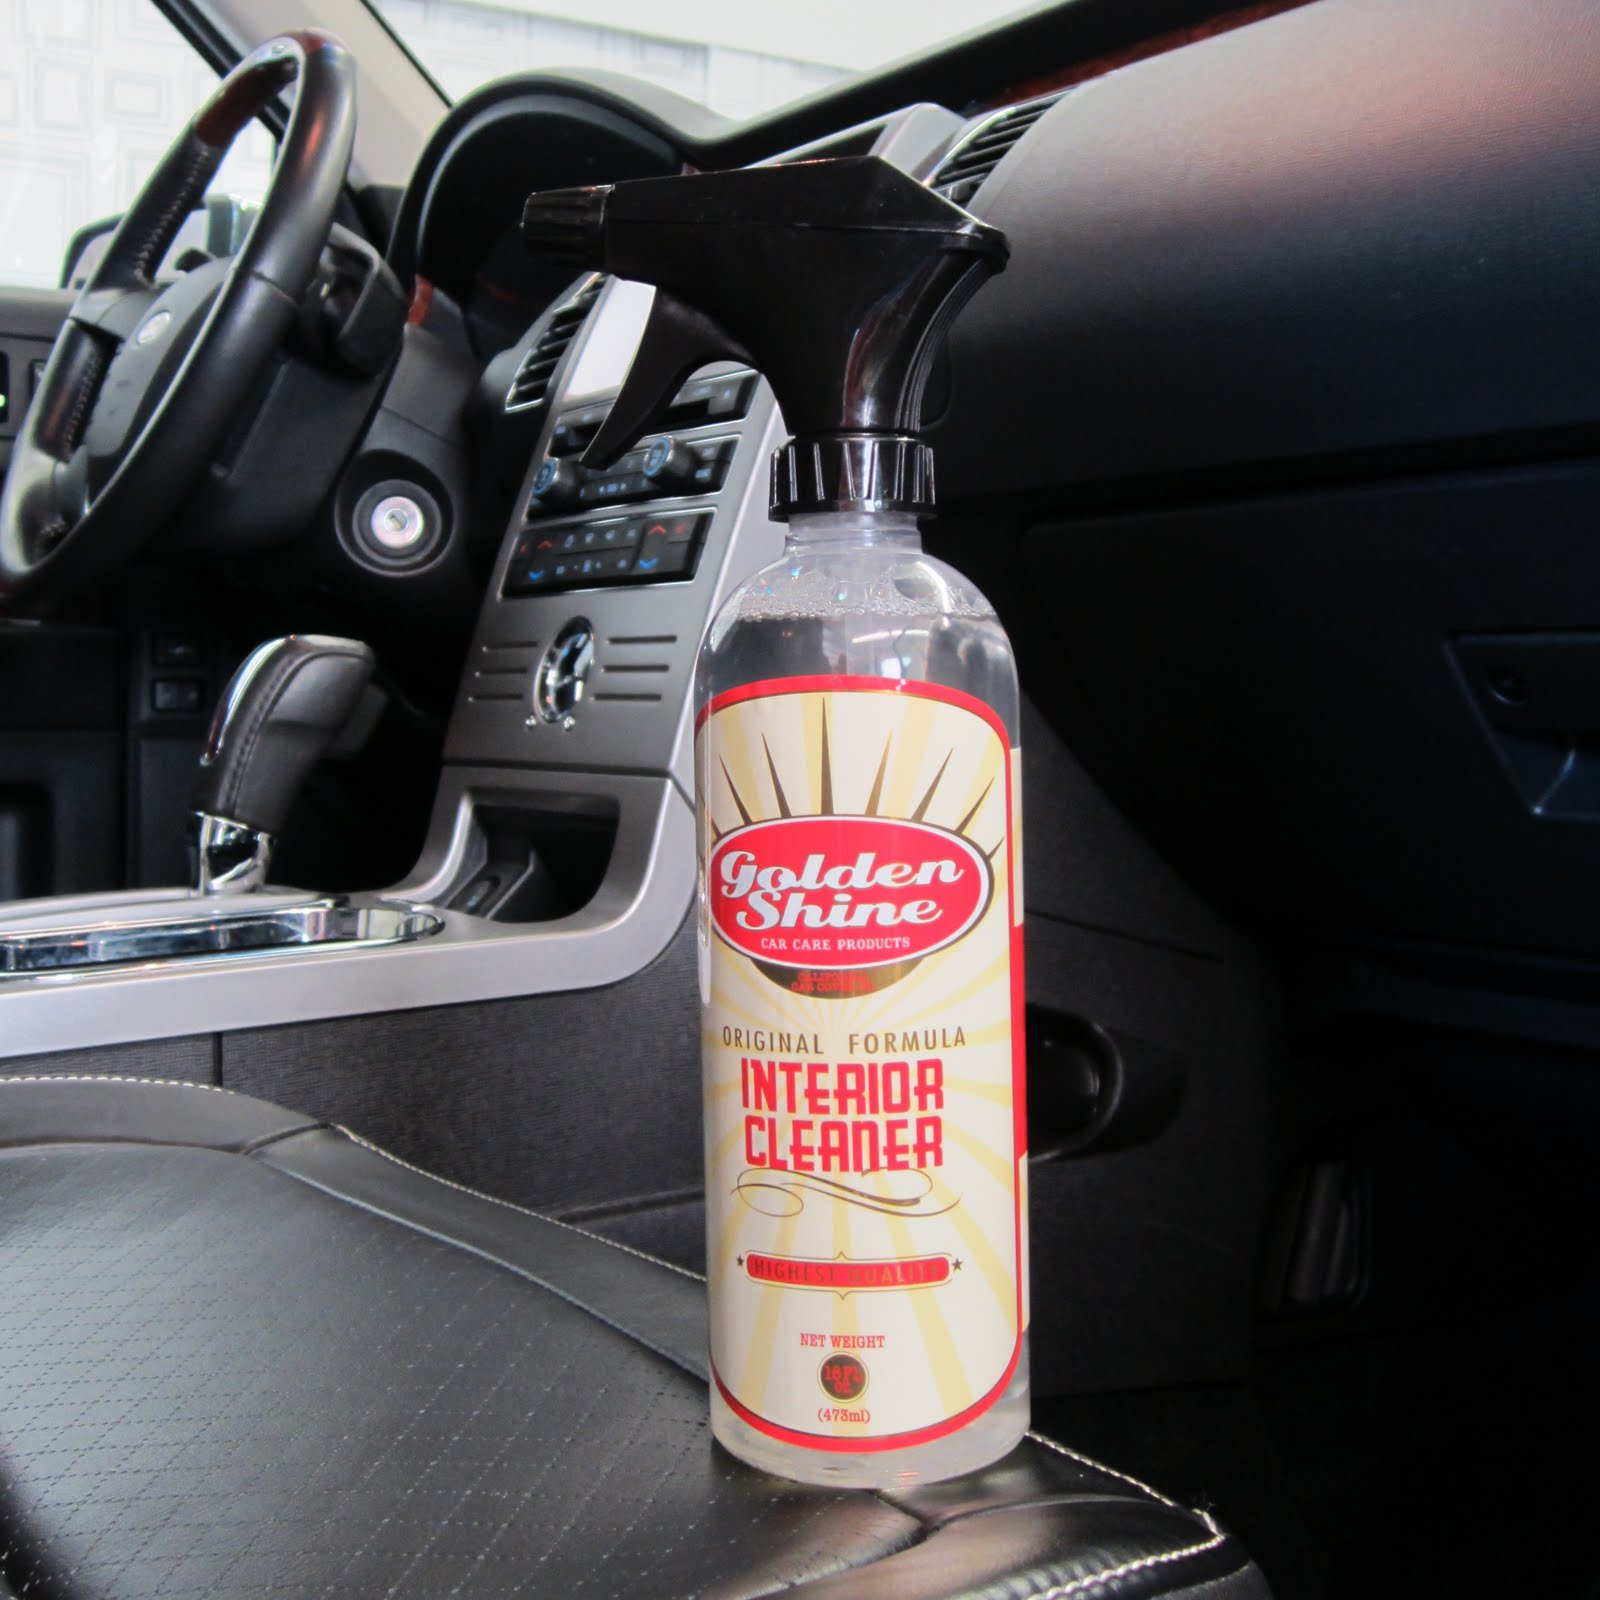 Covering Classic Cars Golden Shine Interior Cleaner